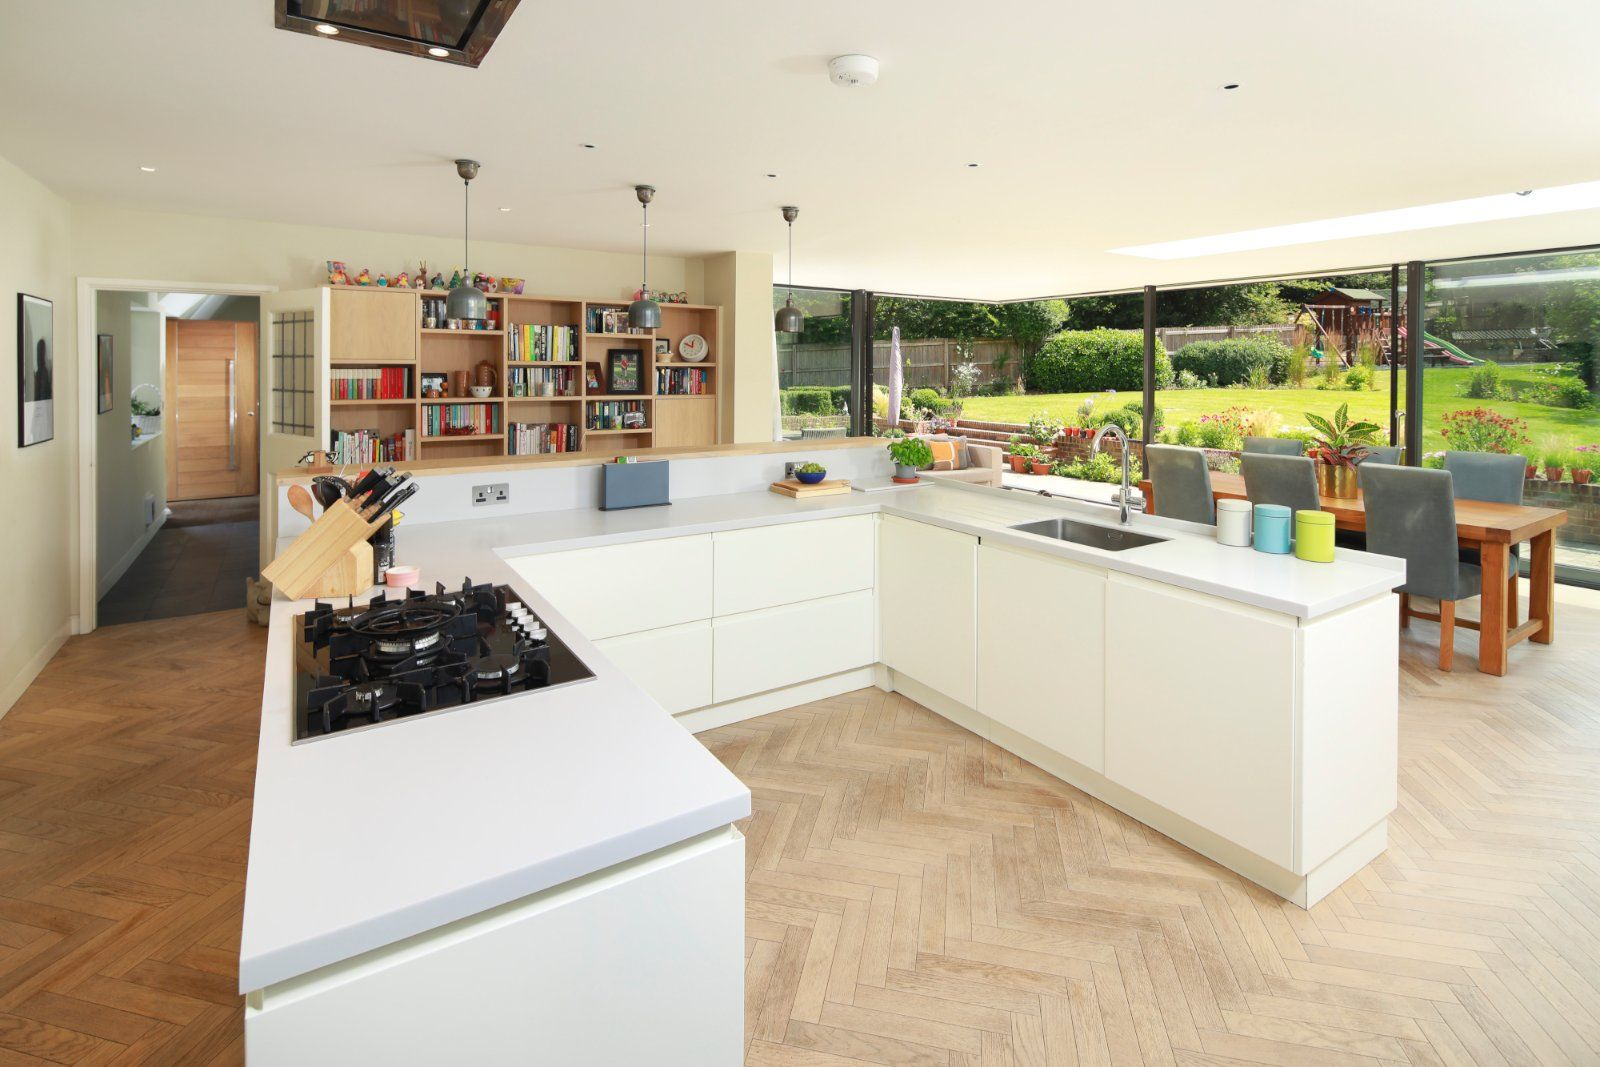 Property photo 1 of 22. Superb Kitchen